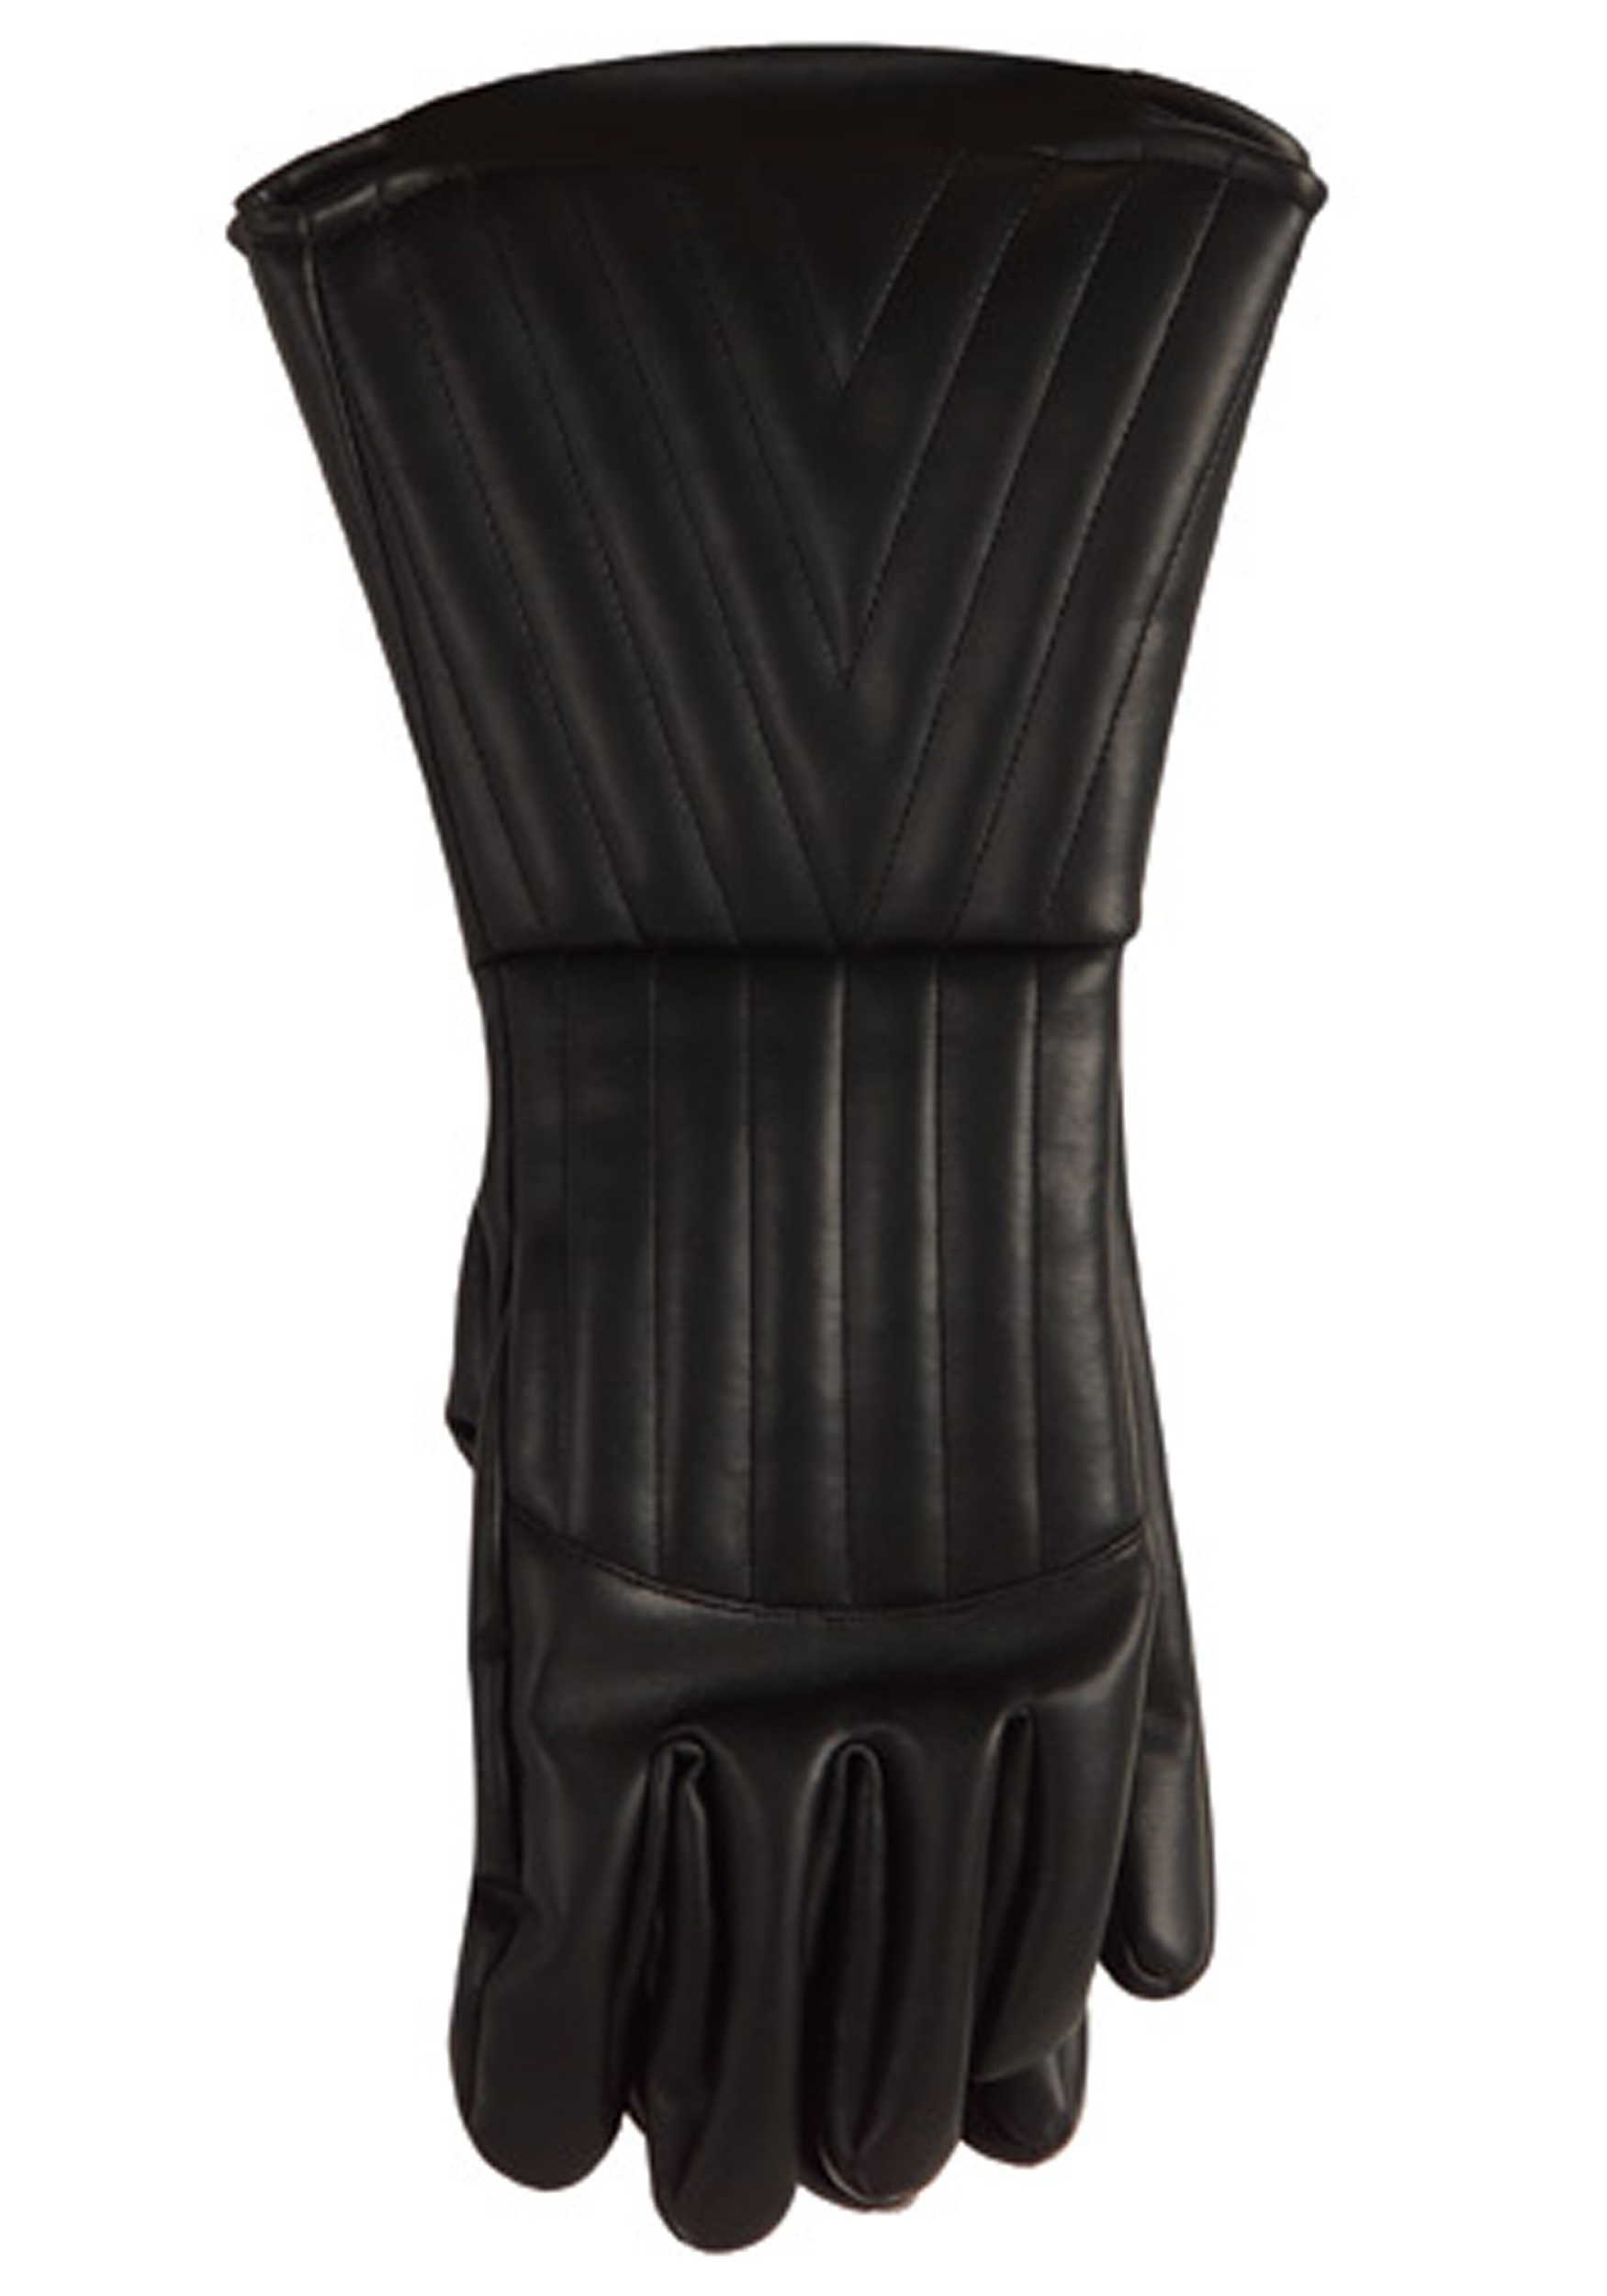 Darth Vader Gloves RU1197